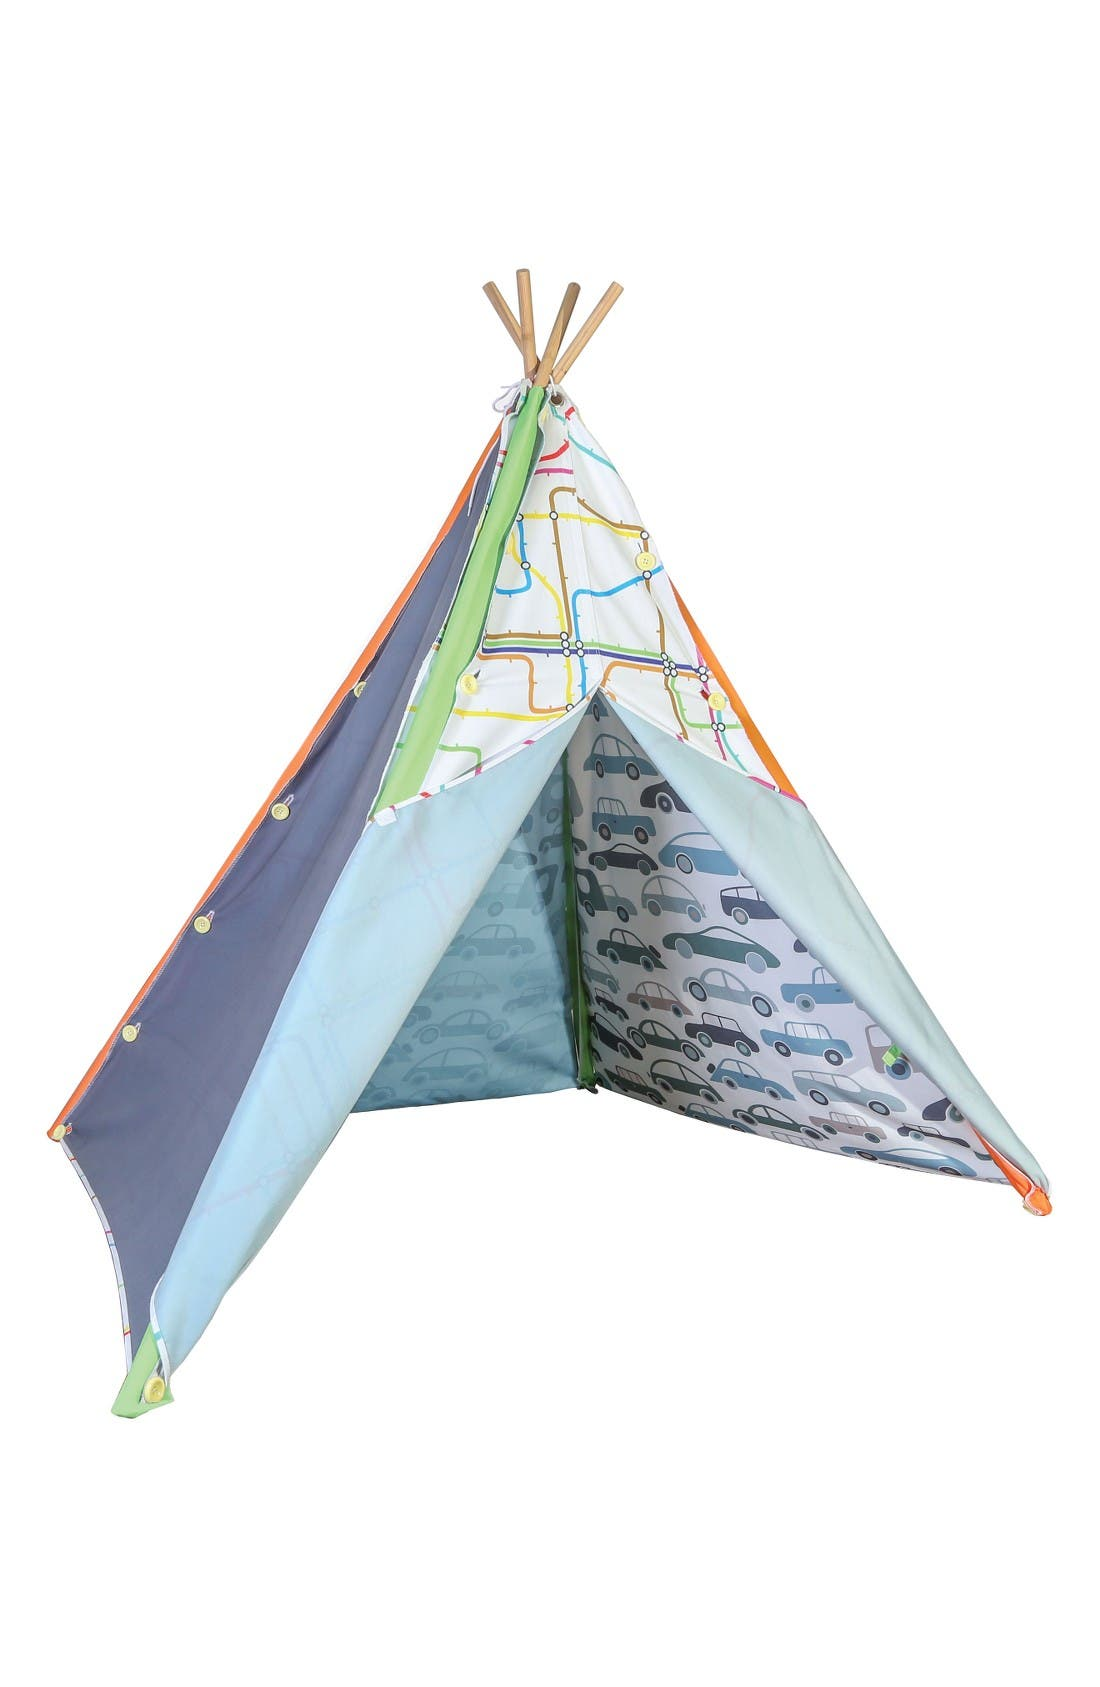 Pacific Play Tents Traffic Jam Interchangeable Teepee Play Tent  sc 1 st  Nordstrom & Play Tents u0026 Teepees Kids Ages 3-7 Games Toys u0026 Gifts | Nordstrom